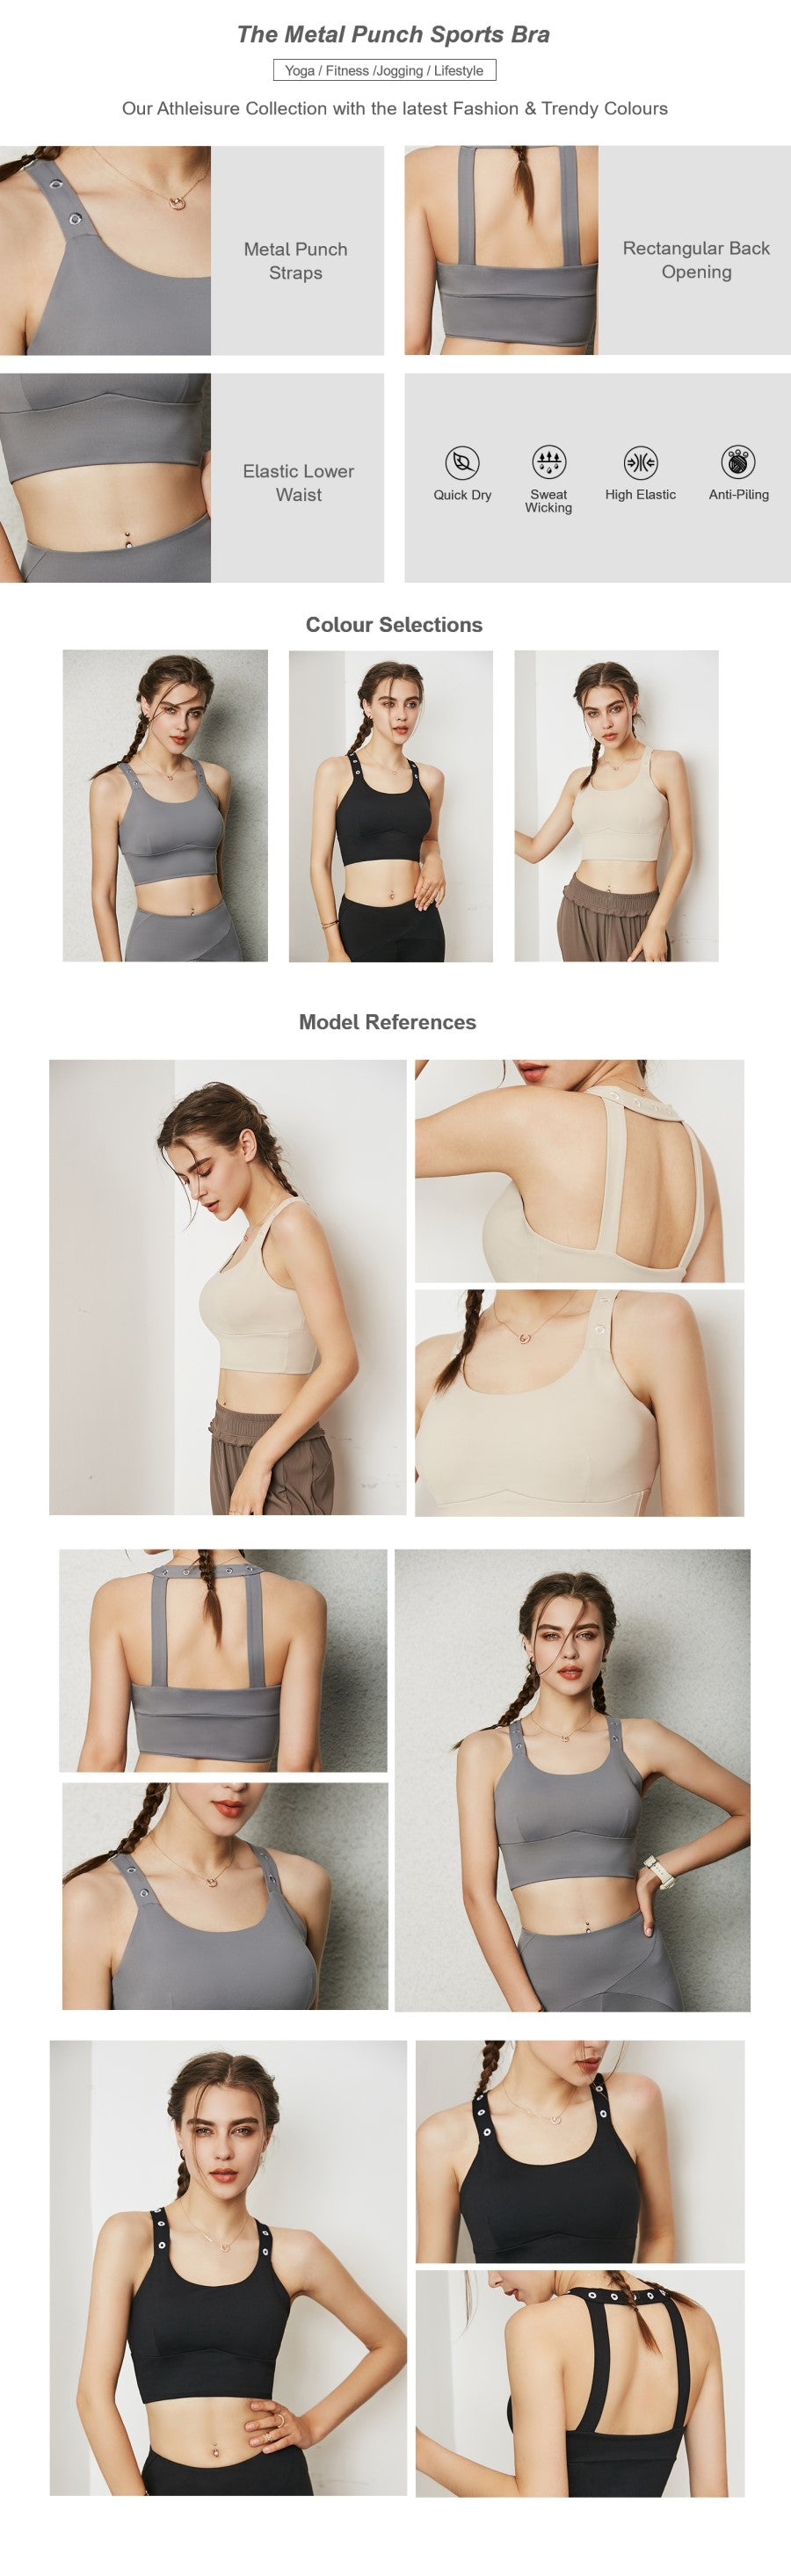 The Metal Punch Sports Bra